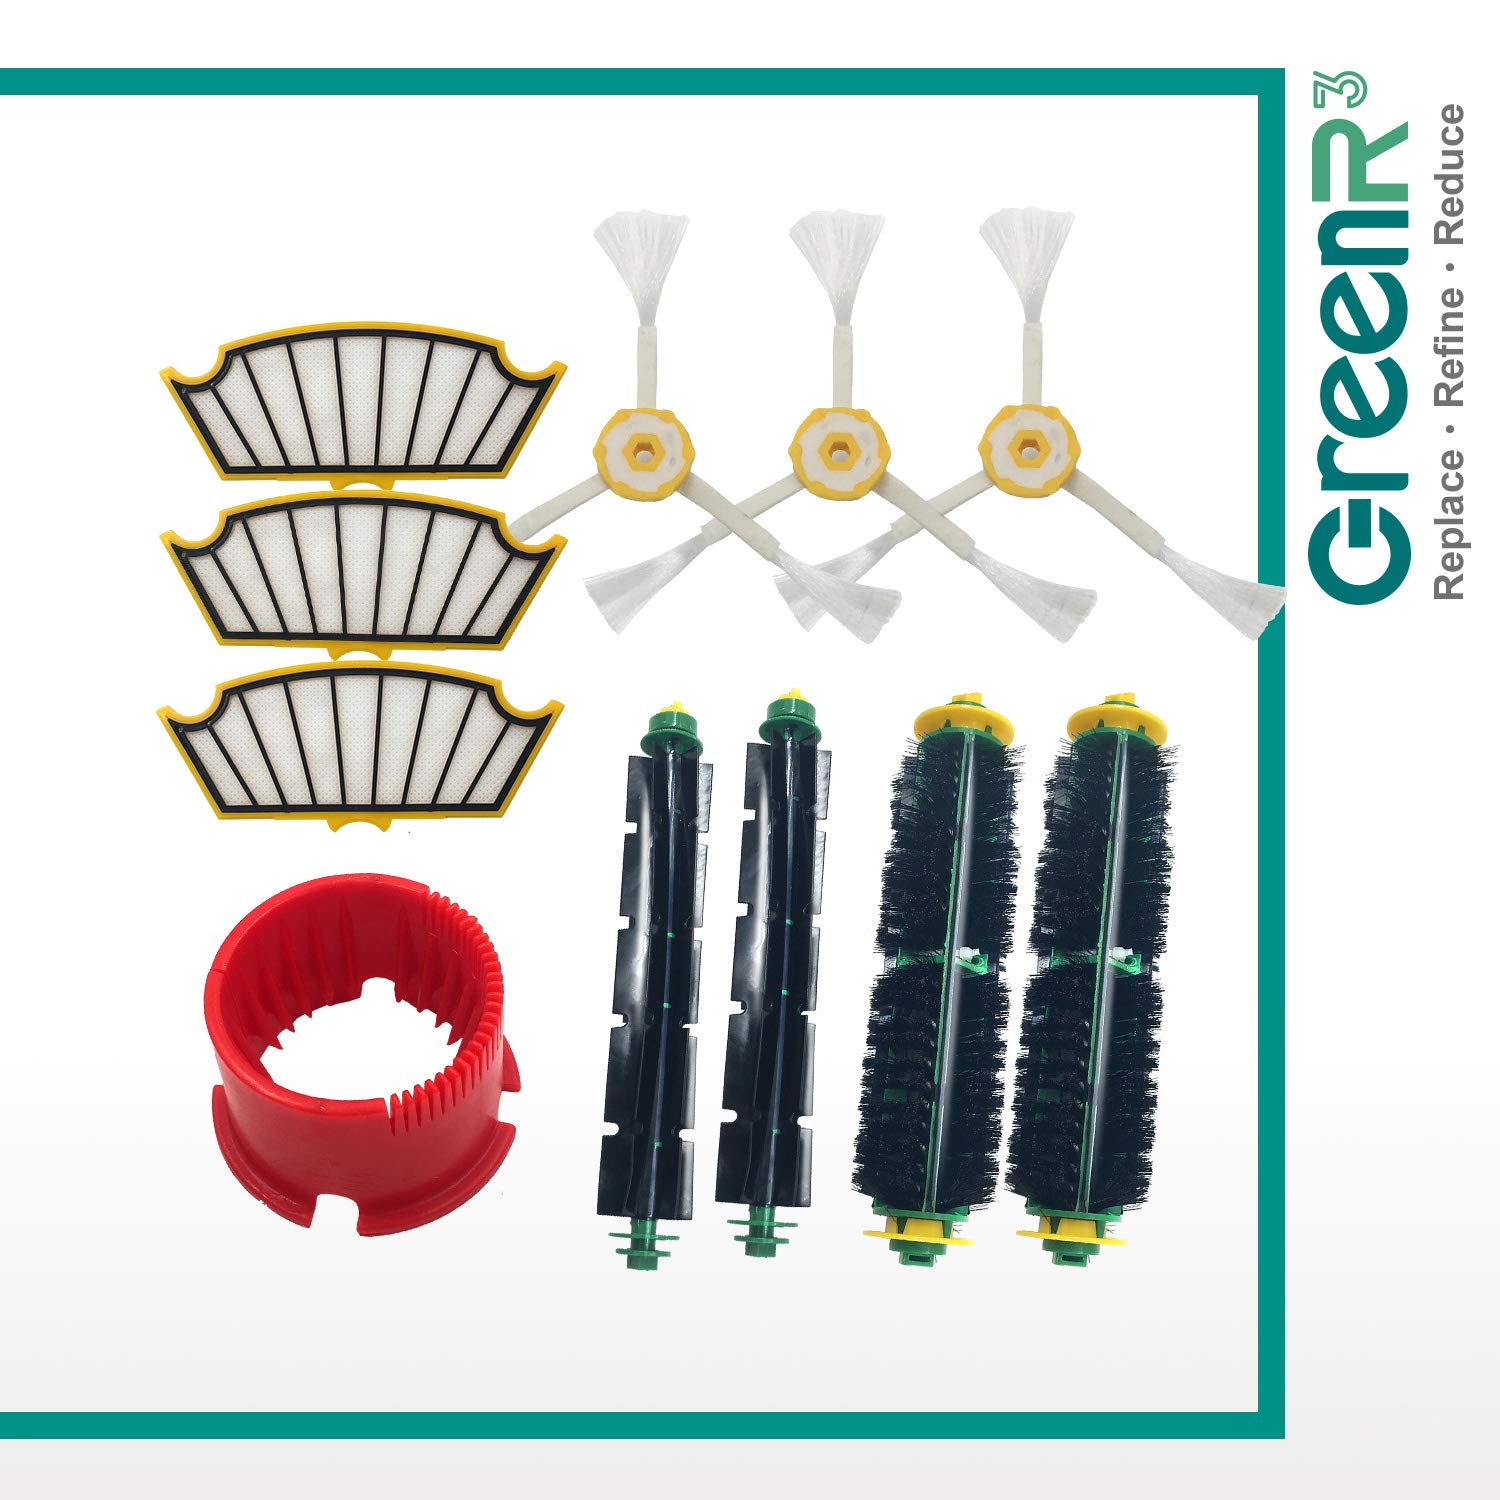 GreenR3 Replacement Parts Tool Pack/Mega Kit for iRobot Fits ROOMBA 500 Series 510 530 535 540 560 570 582 580 562 581 511 531 532 533 536 537 (3 HEPA Filters + 3 Side Brushes + 2 Bristle Brushes) Compatible